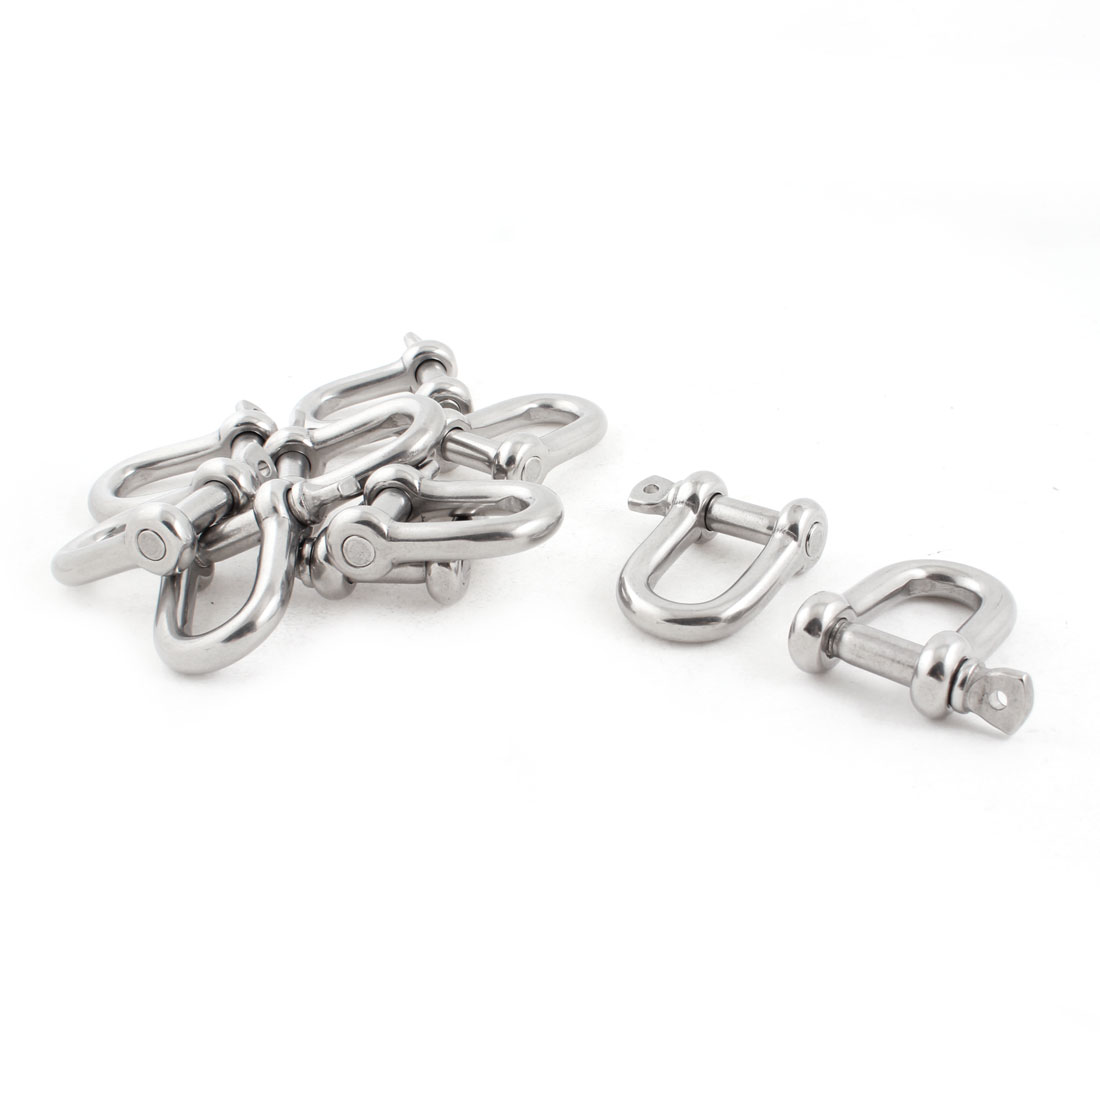 10 PCS 12mm Stainless Steel Wire Rope D Shape Shackles Fasteners